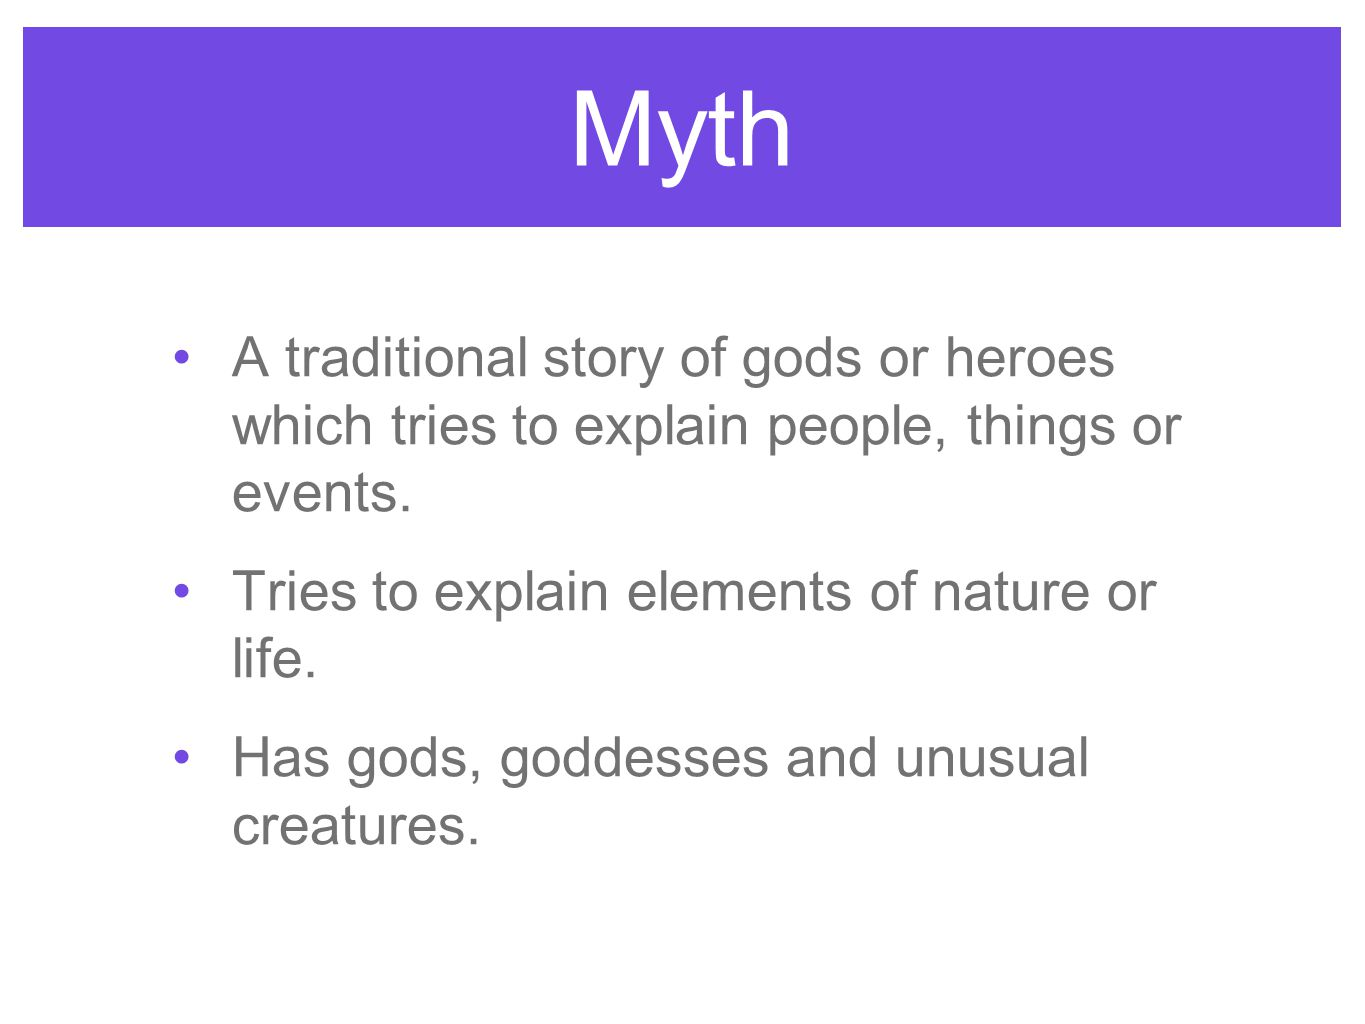 Myth A traditional story of gods or heroes which tries to explain people, things or events. Tries to explain elements of nature or life. Has gods, god